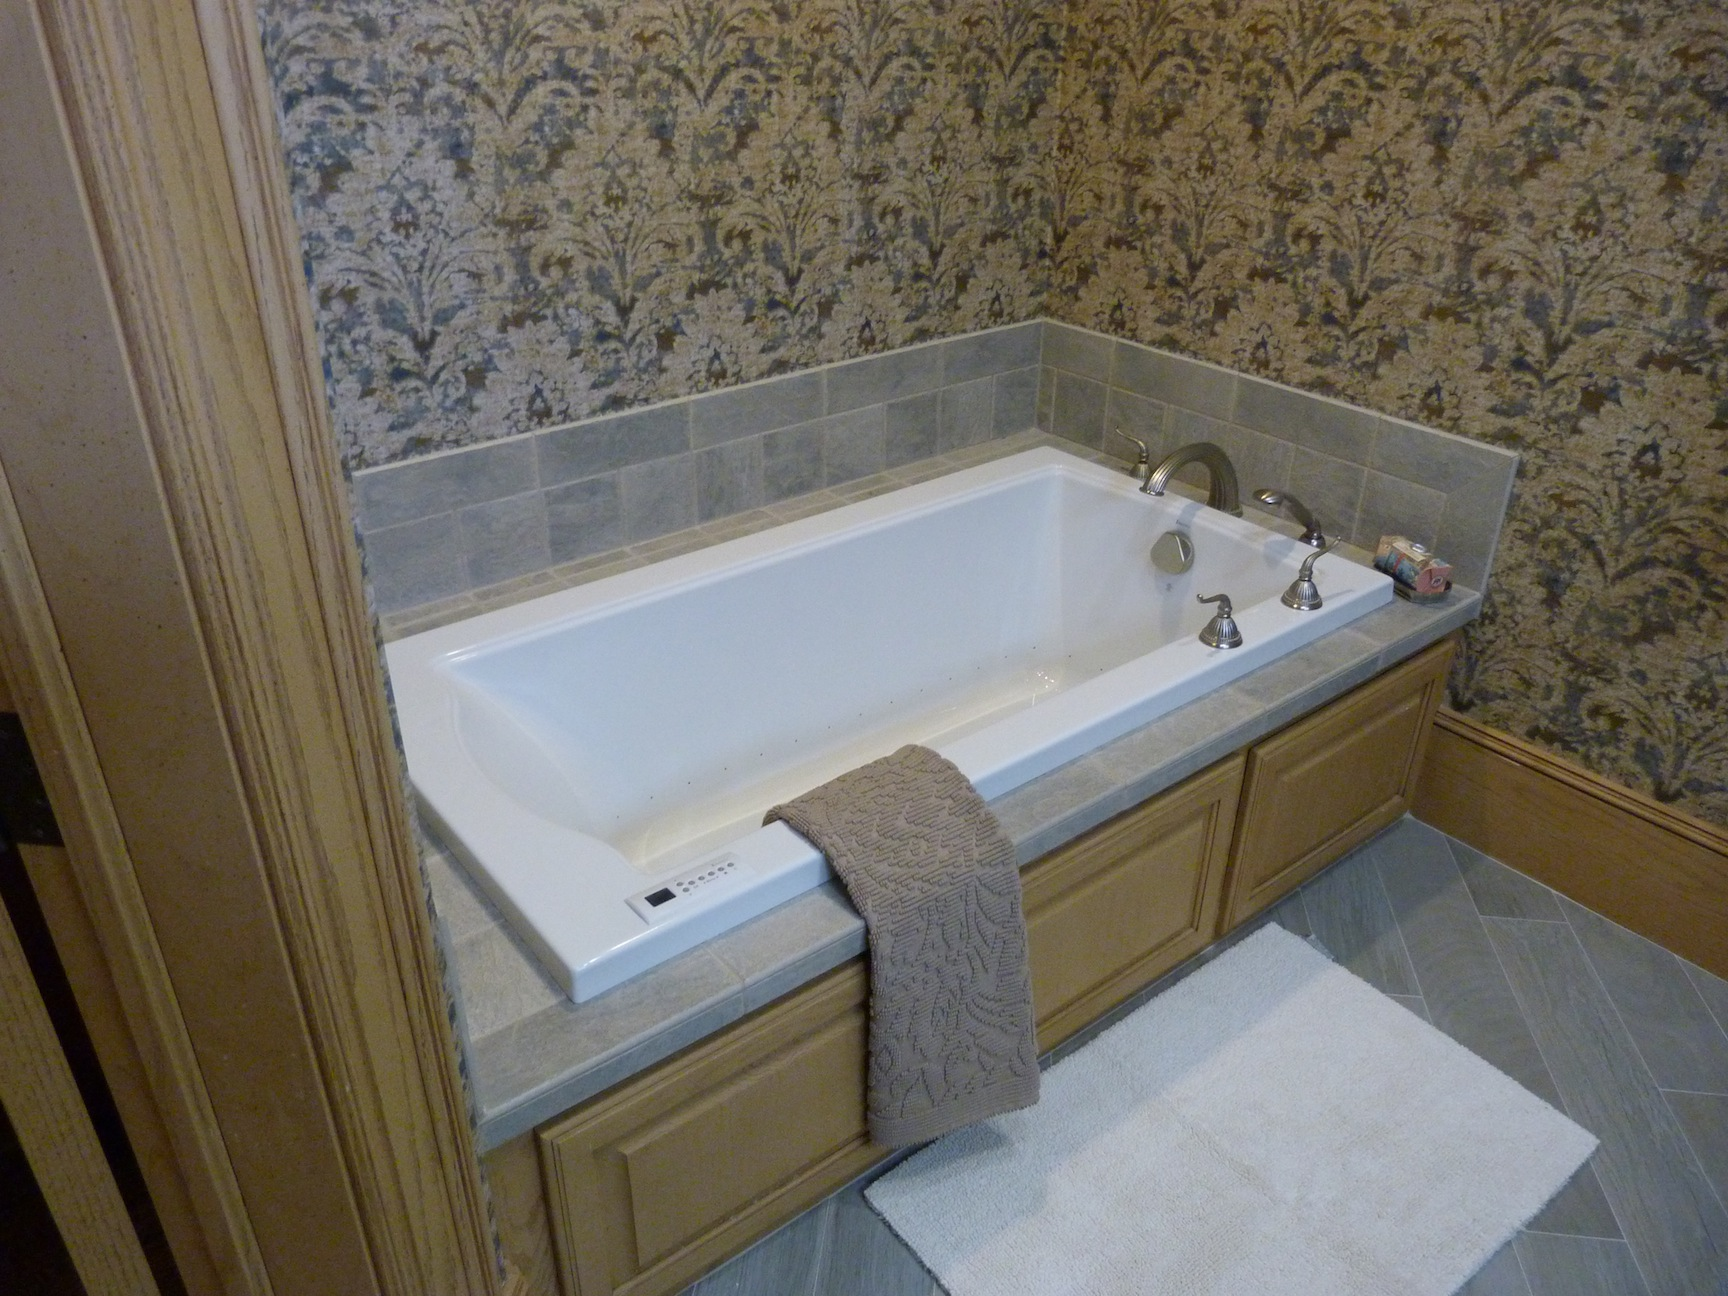 Bathroom Remodeling Oklahoma City Majestic Construction - Bathroom remodel okc